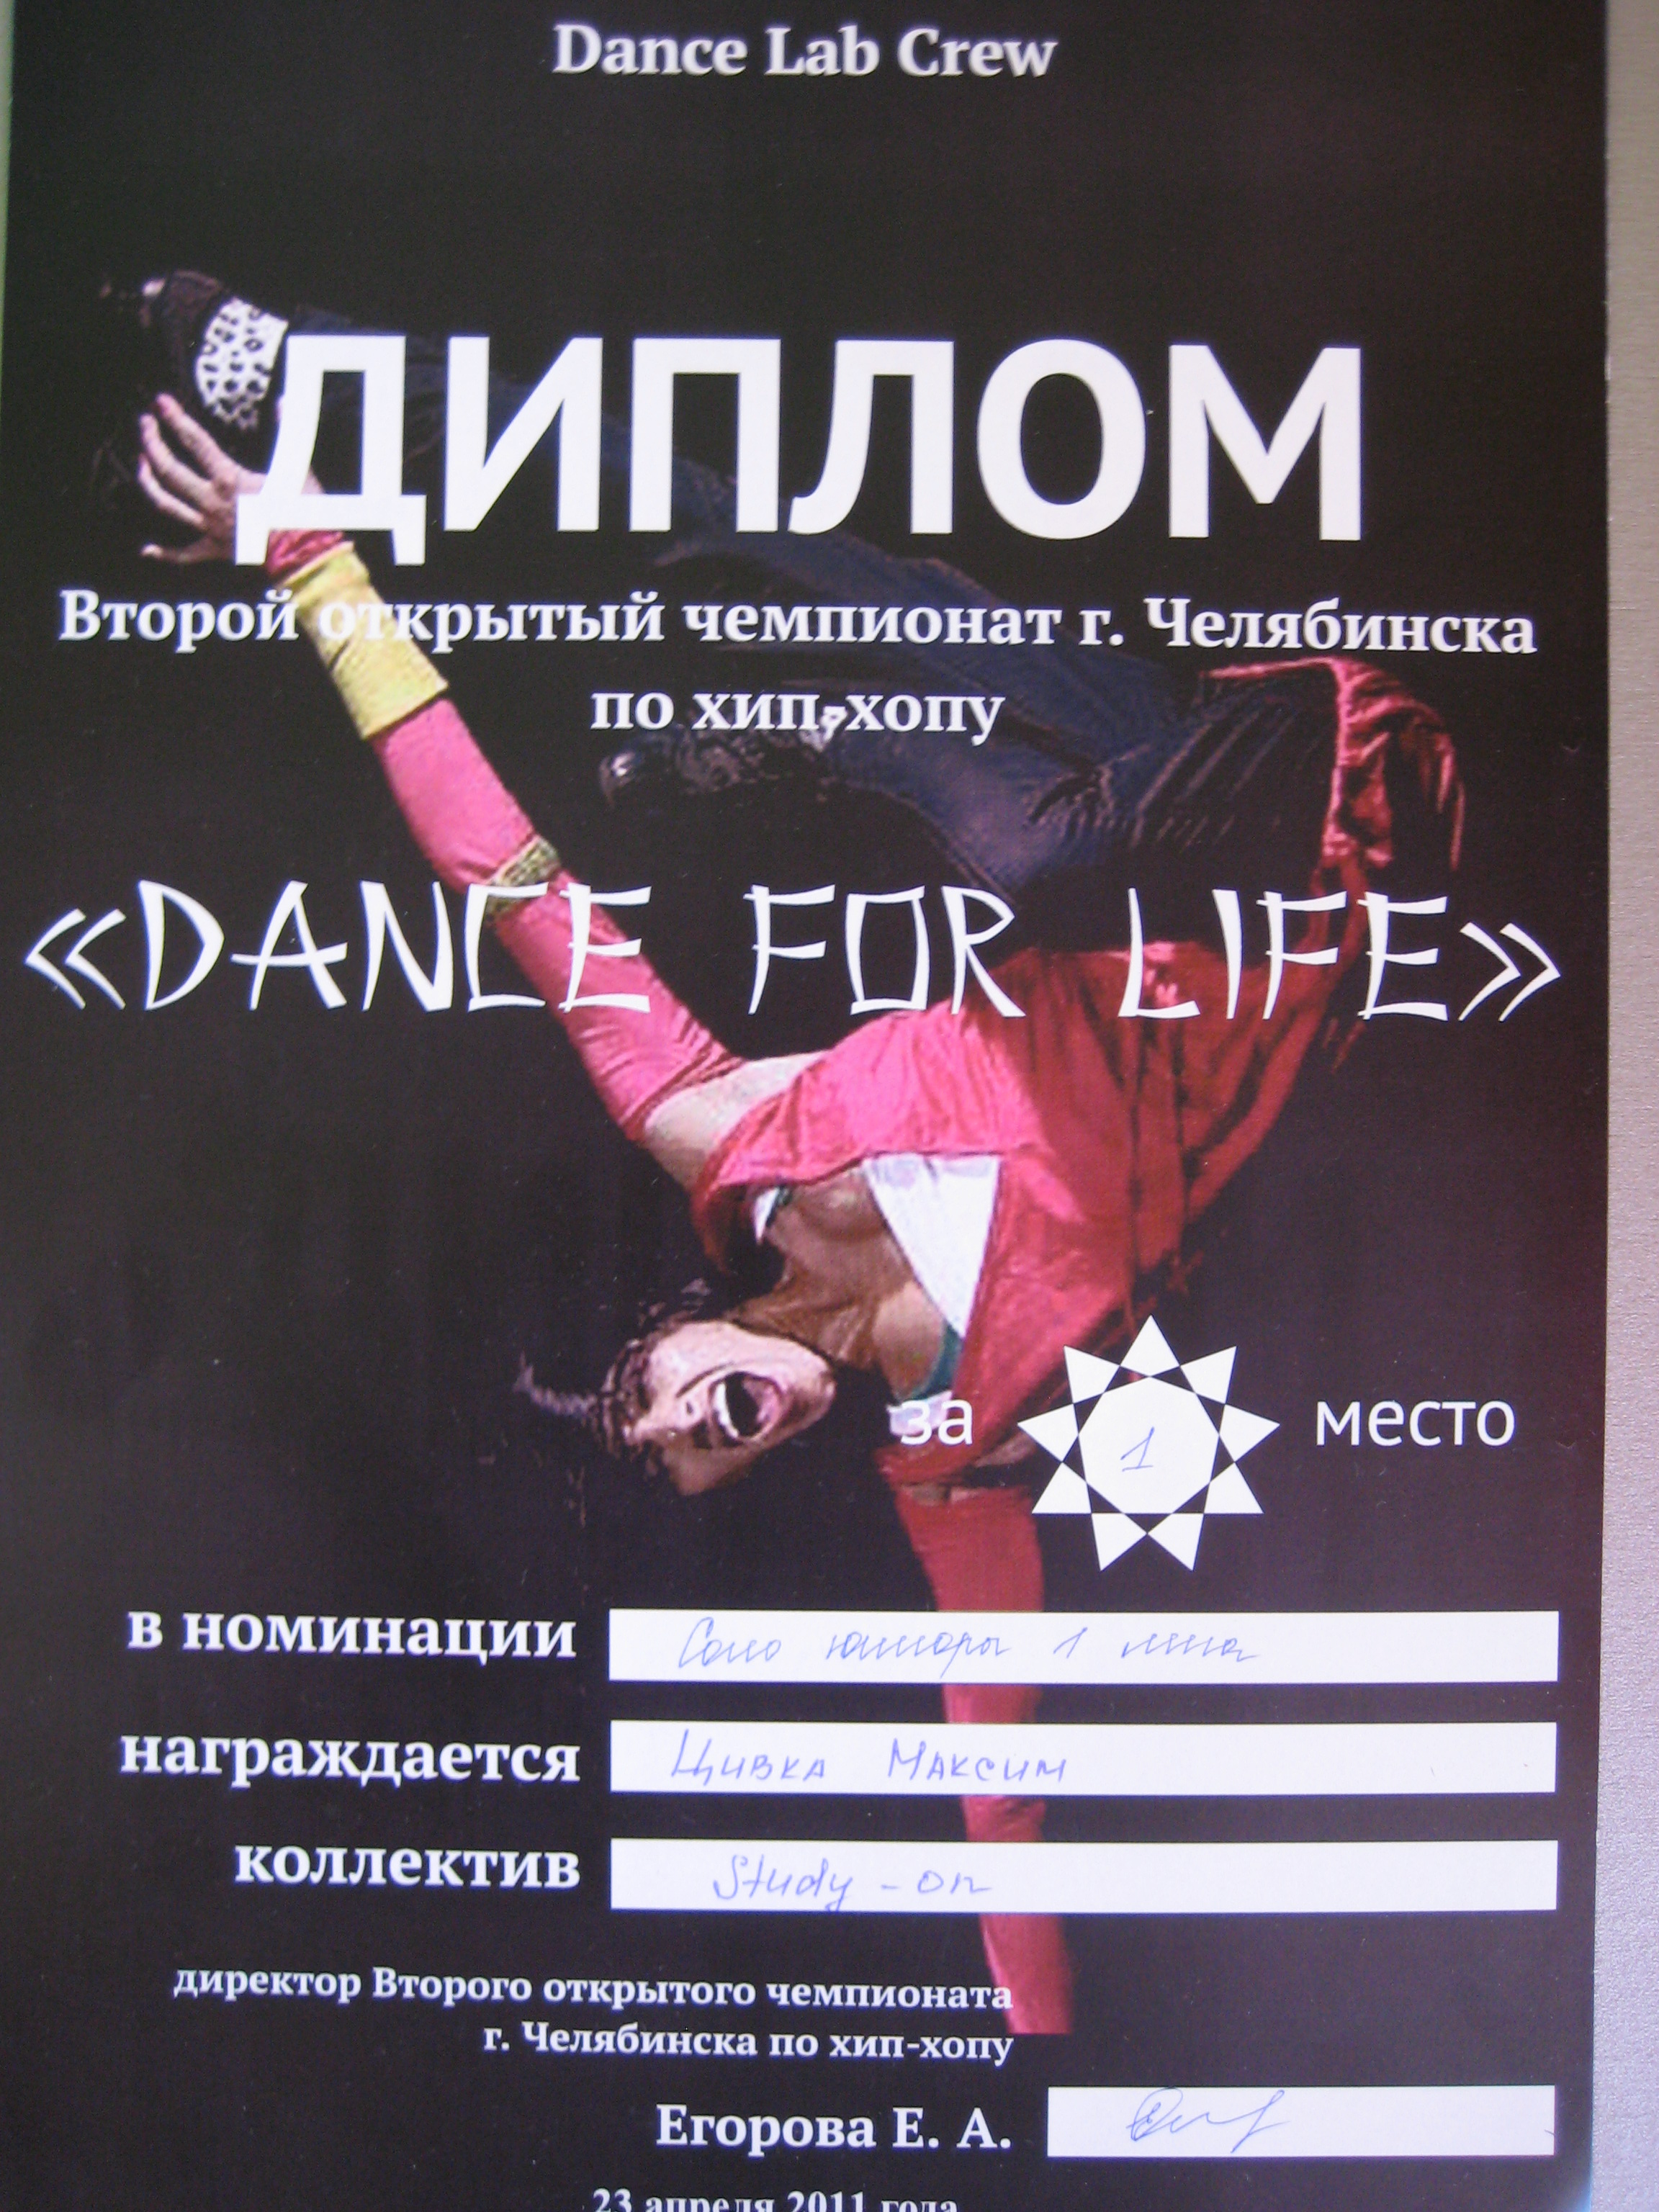 Study-On: Dance for life, юниоры-соло, 1 место